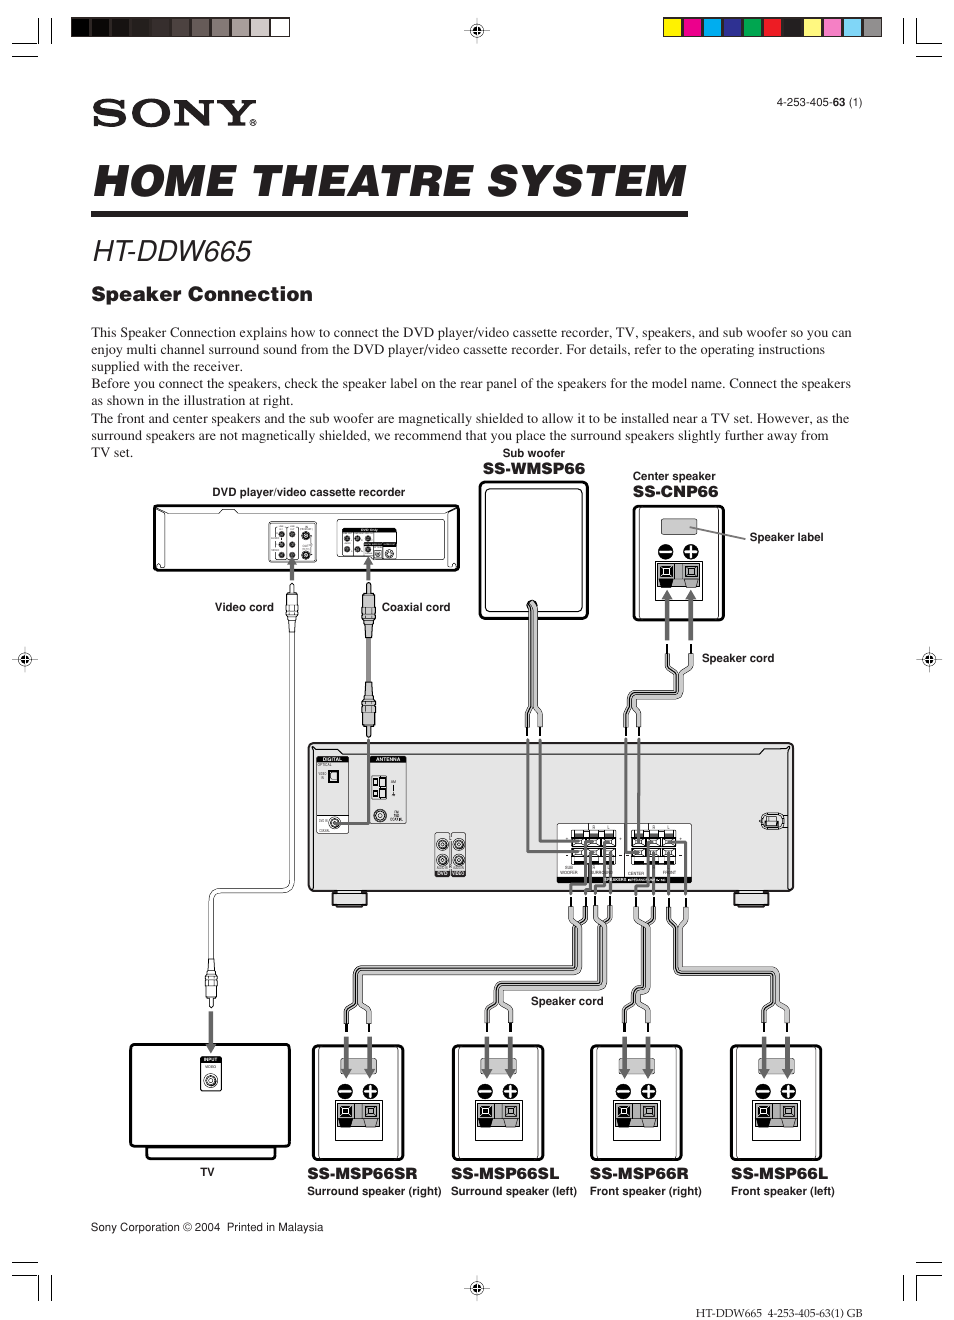 Ht Wiring Diagram Detailed Schematics Home Theatre Sony Ddw And Light Switch